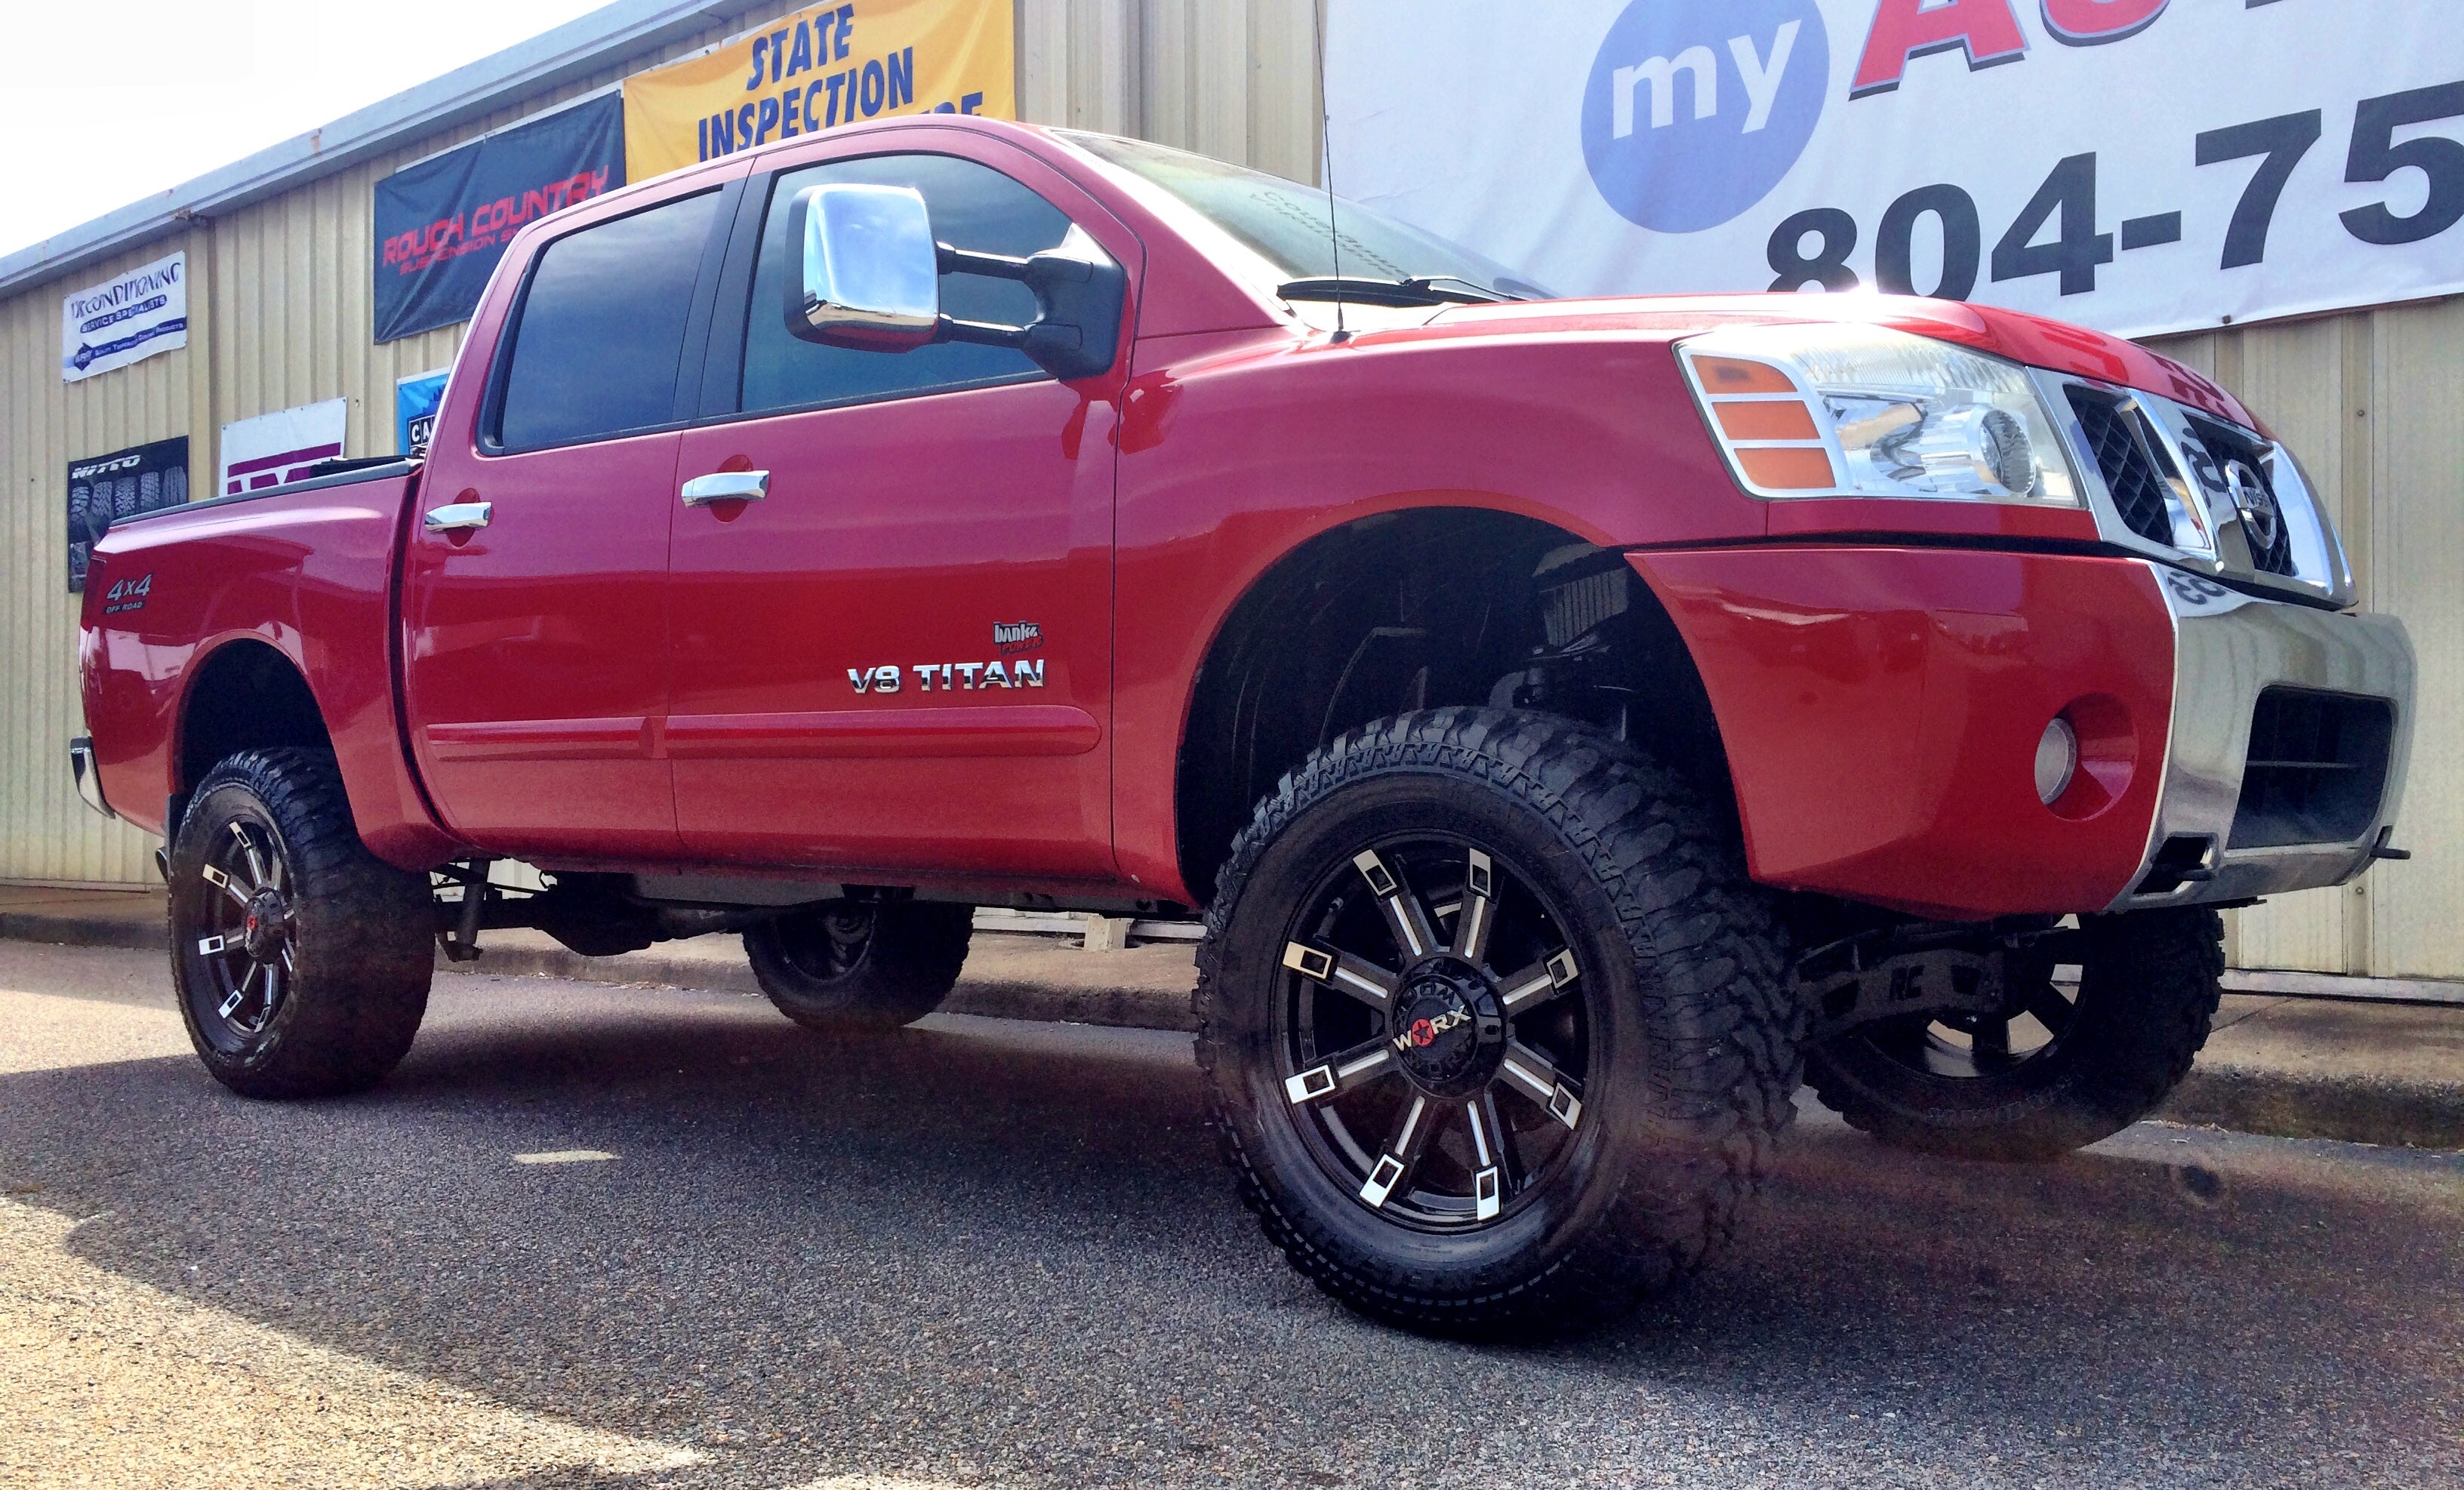 swift regina nissan current knight models slider titan